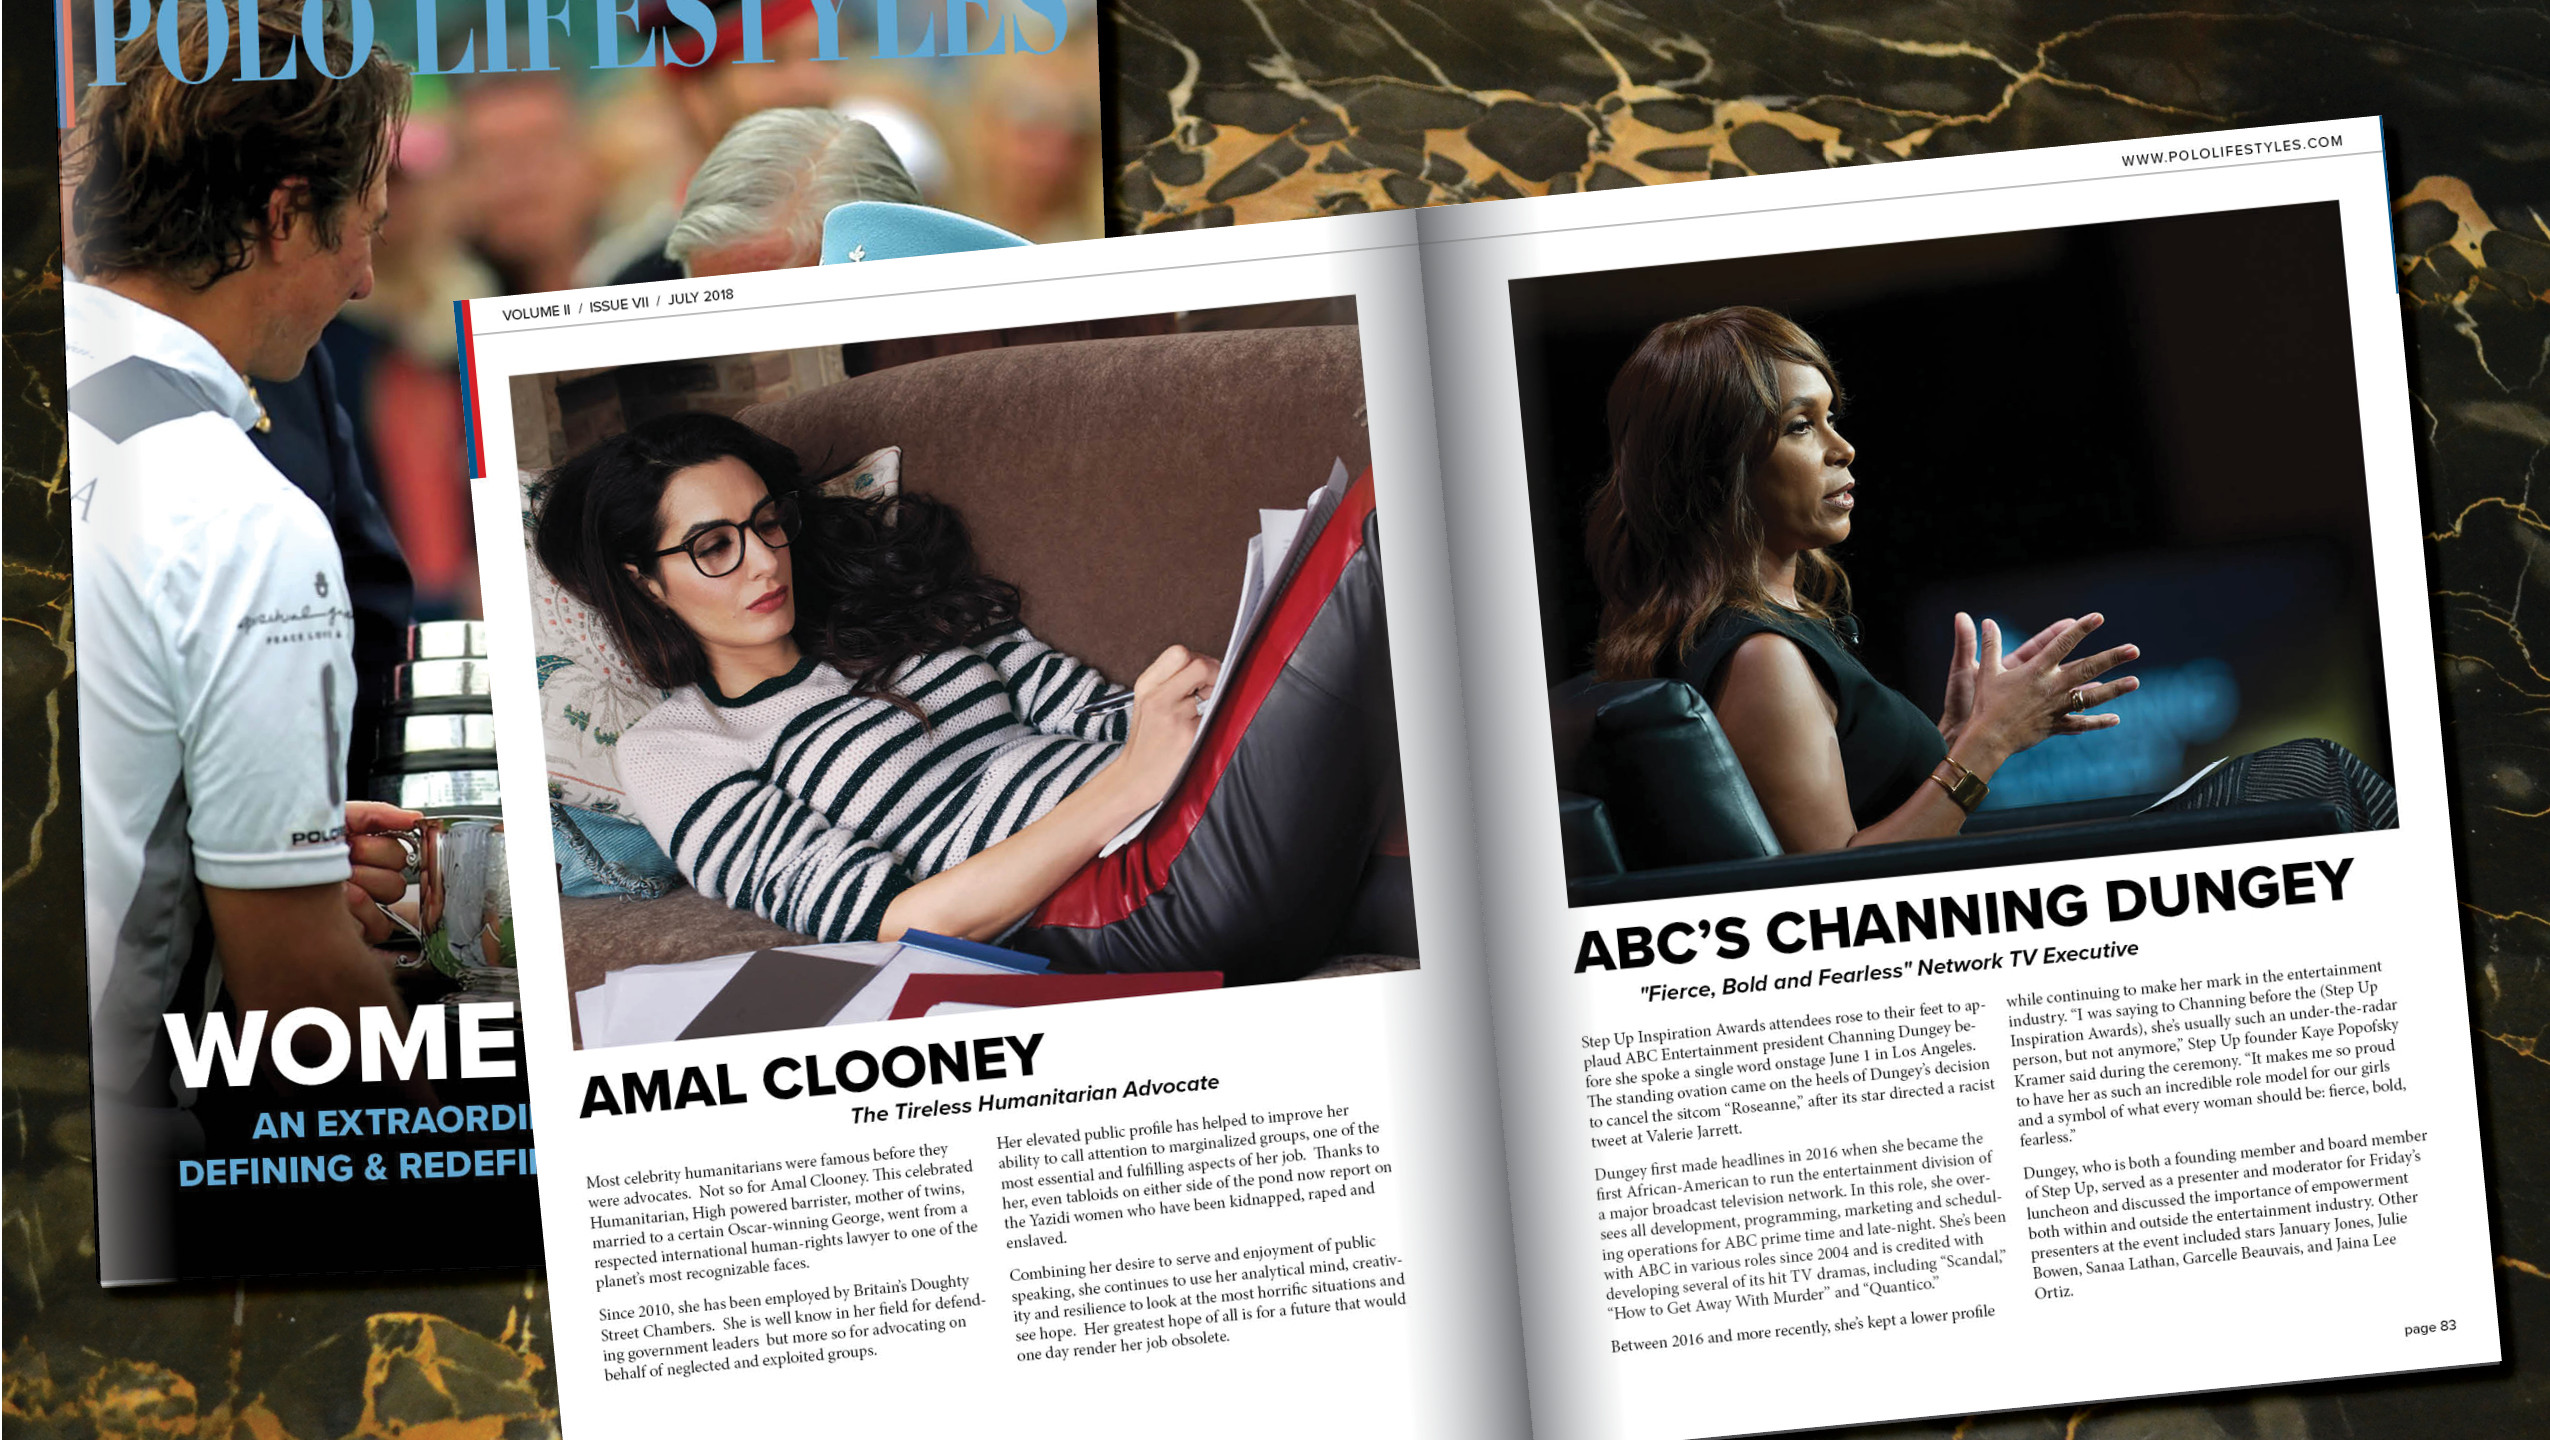 AMAL CLOONEY & CHANNING DUNGEY